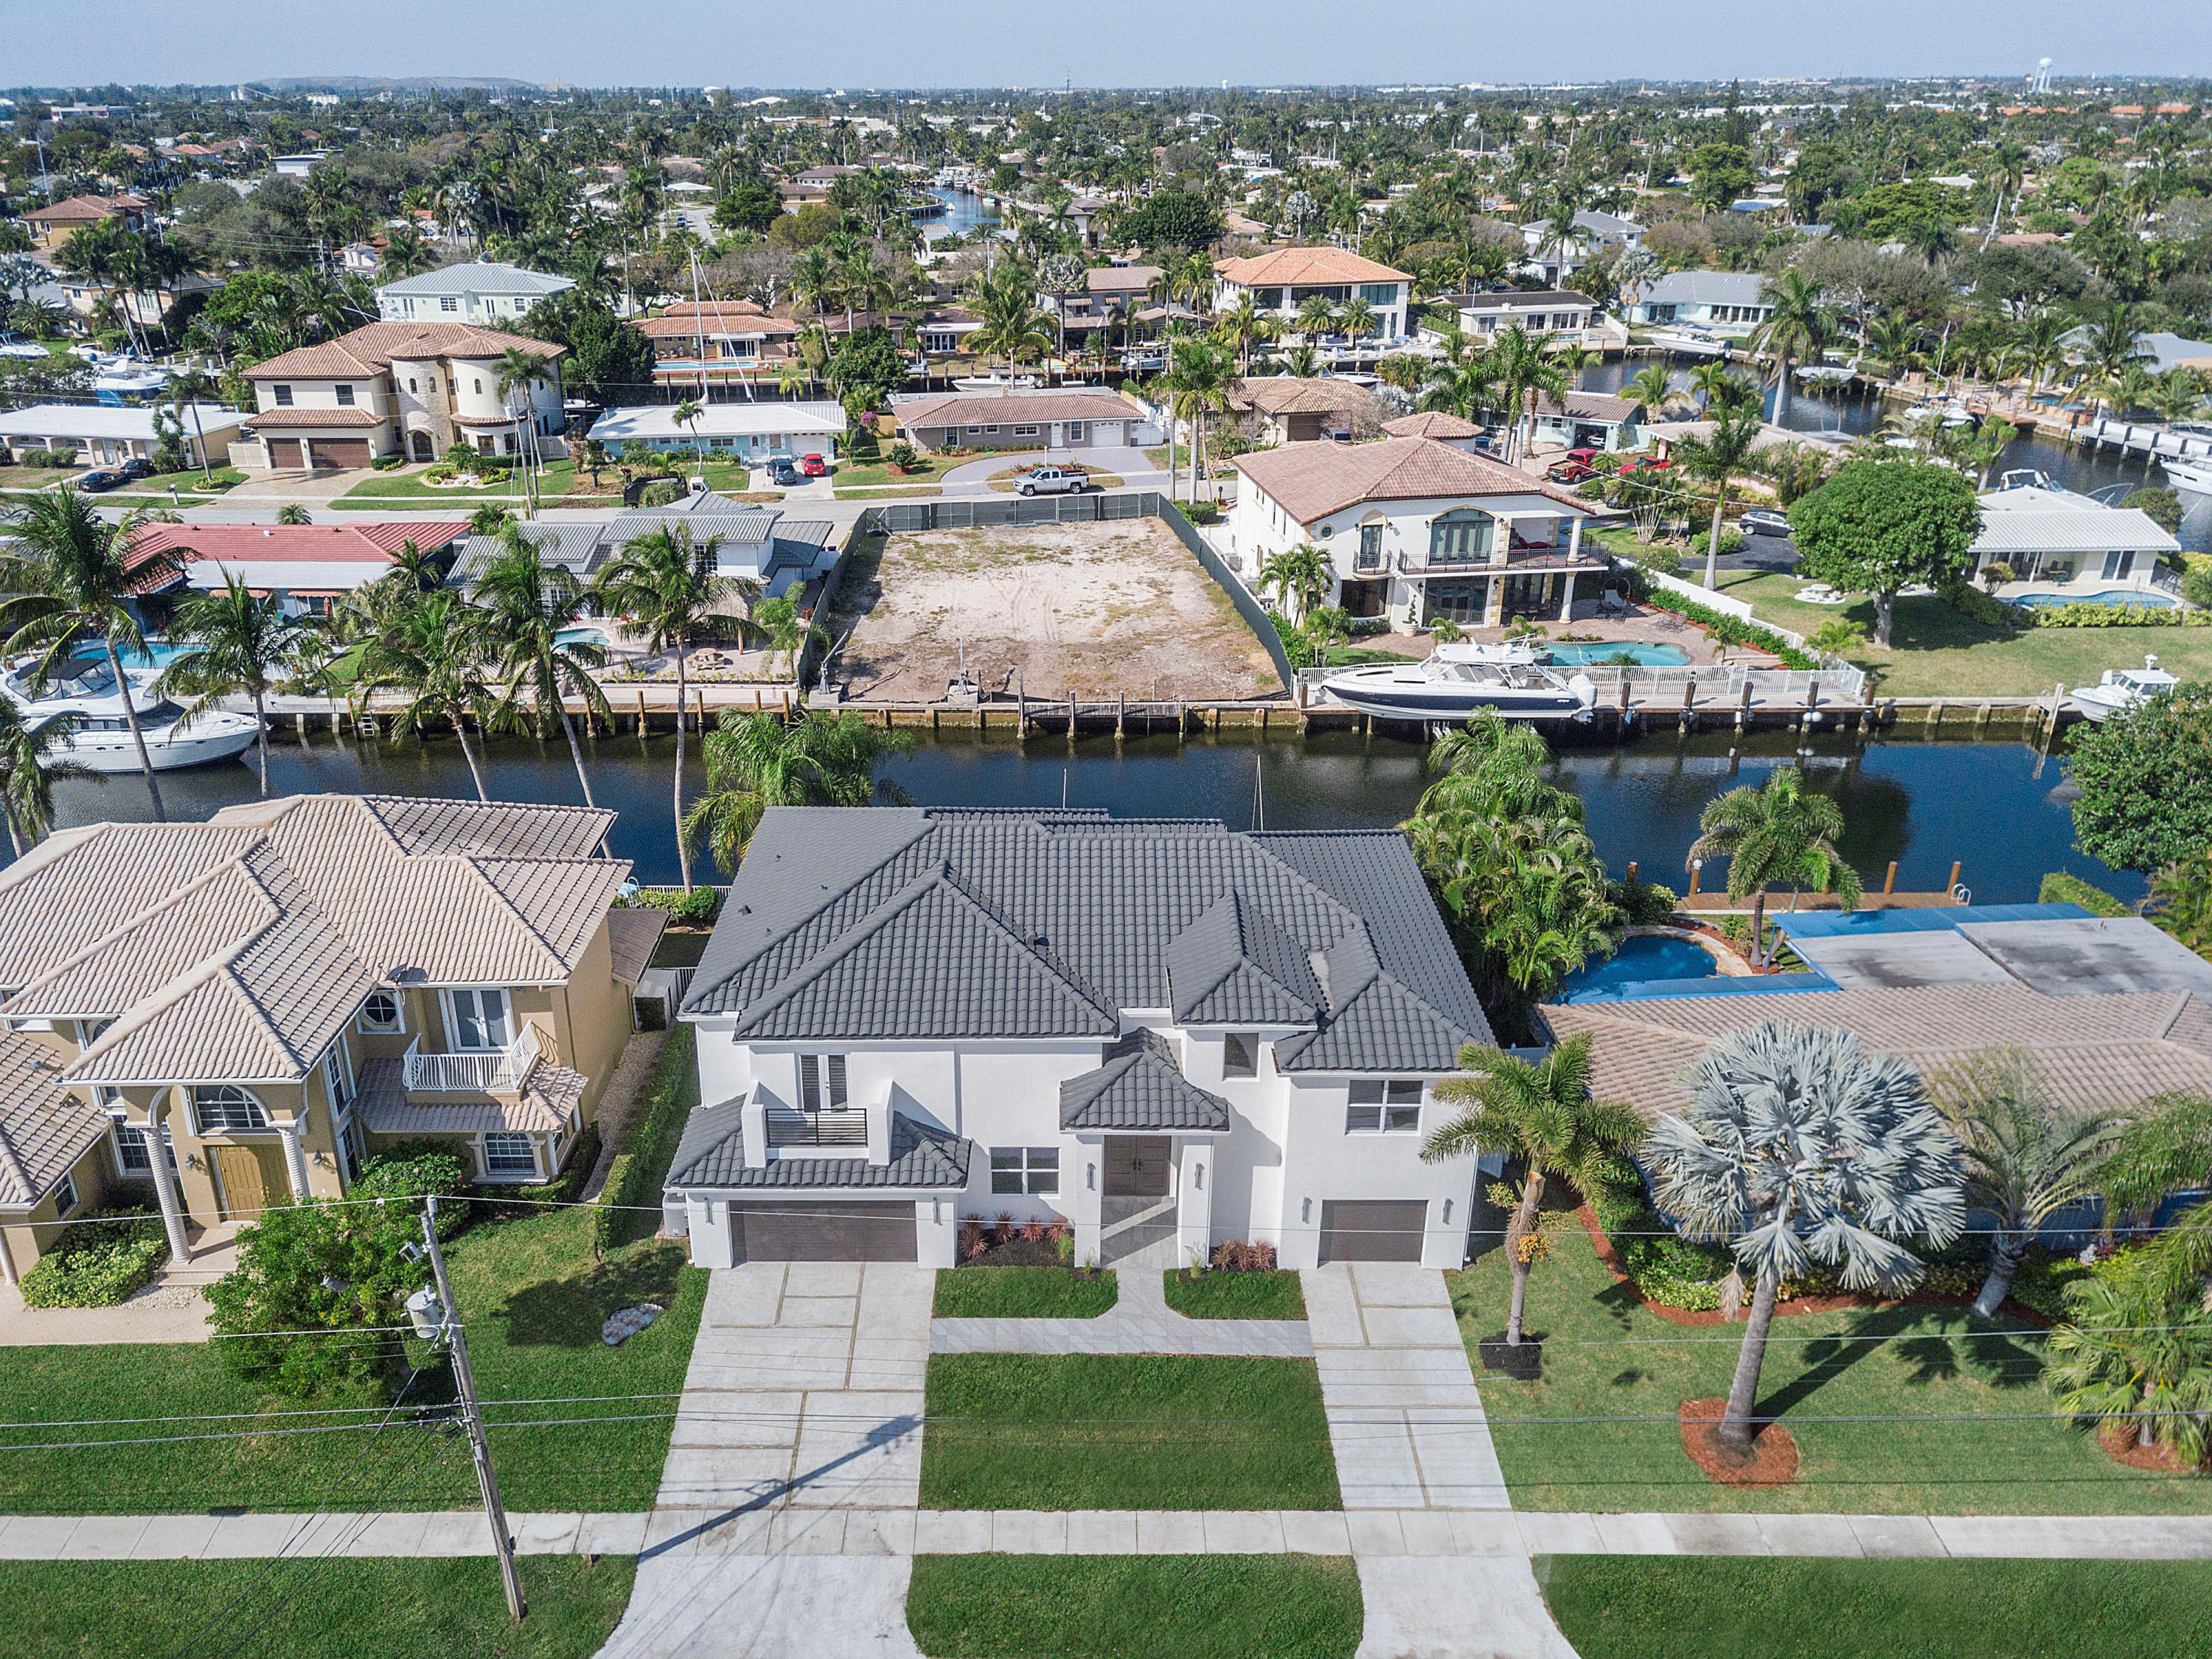 4921 28th Avenue, Lighthouse Point, Florida 33064, 6 Bedrooms Bedrooms, ,5.1 BathroomsBathrooms,Single Family,For Sale,28th,RX-10436735